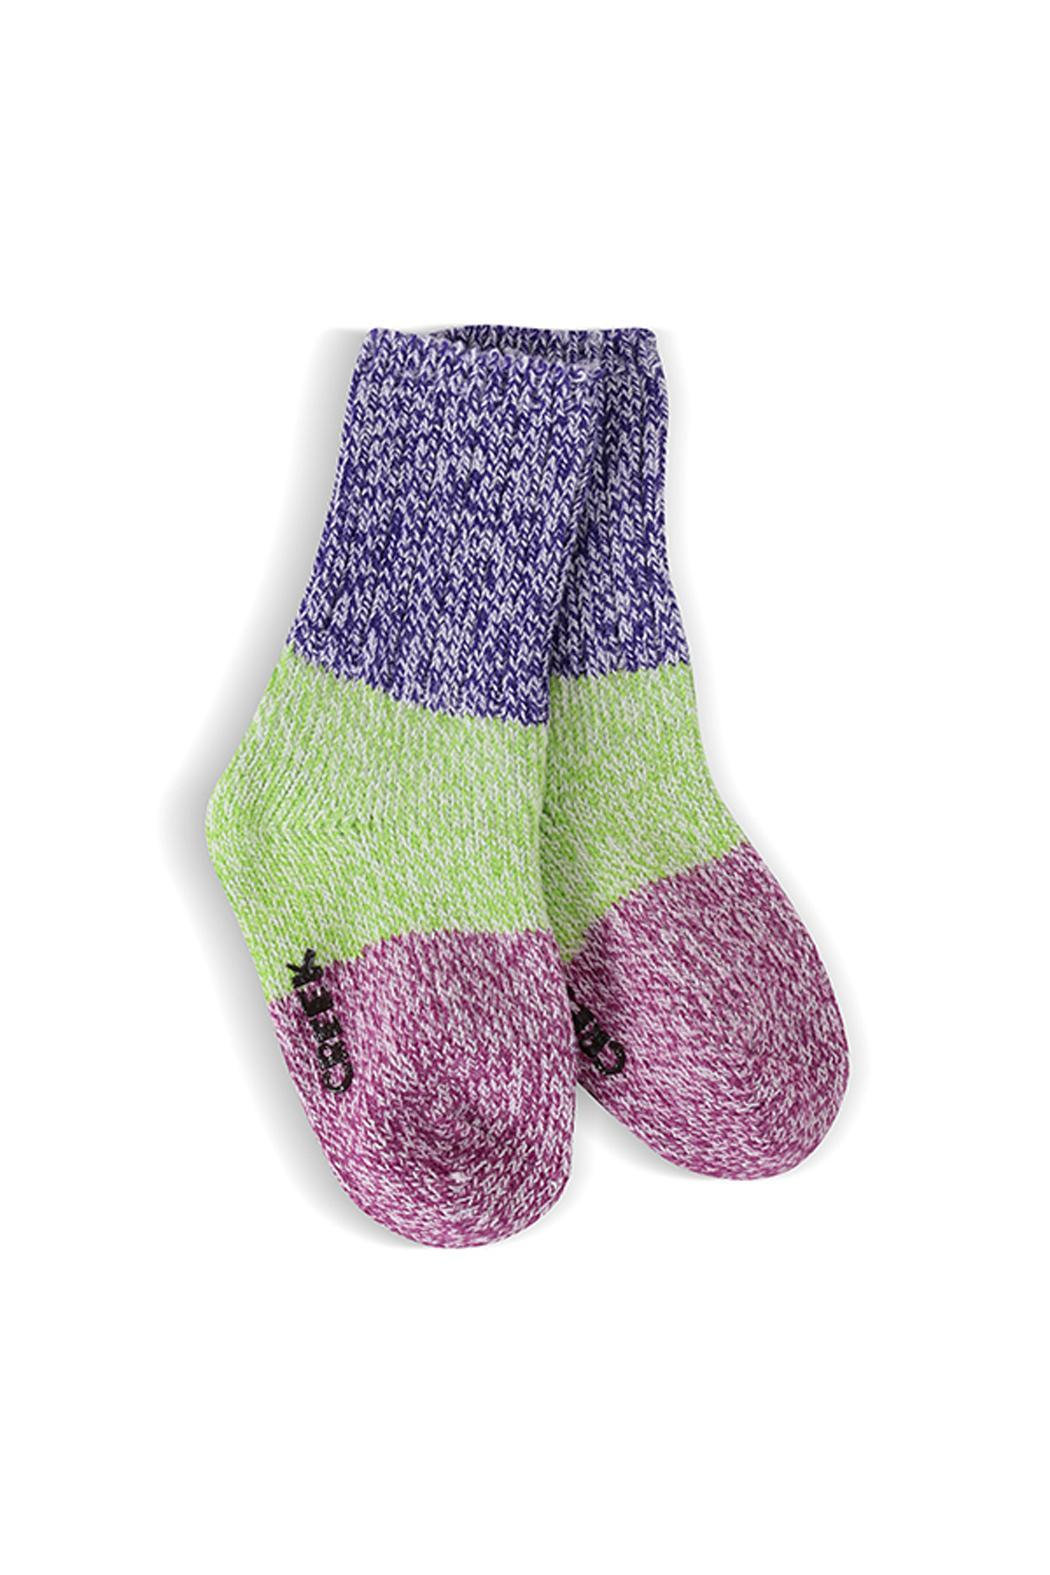 Mouse Creek Trading Co. Toddler Crew Sock - Main Image